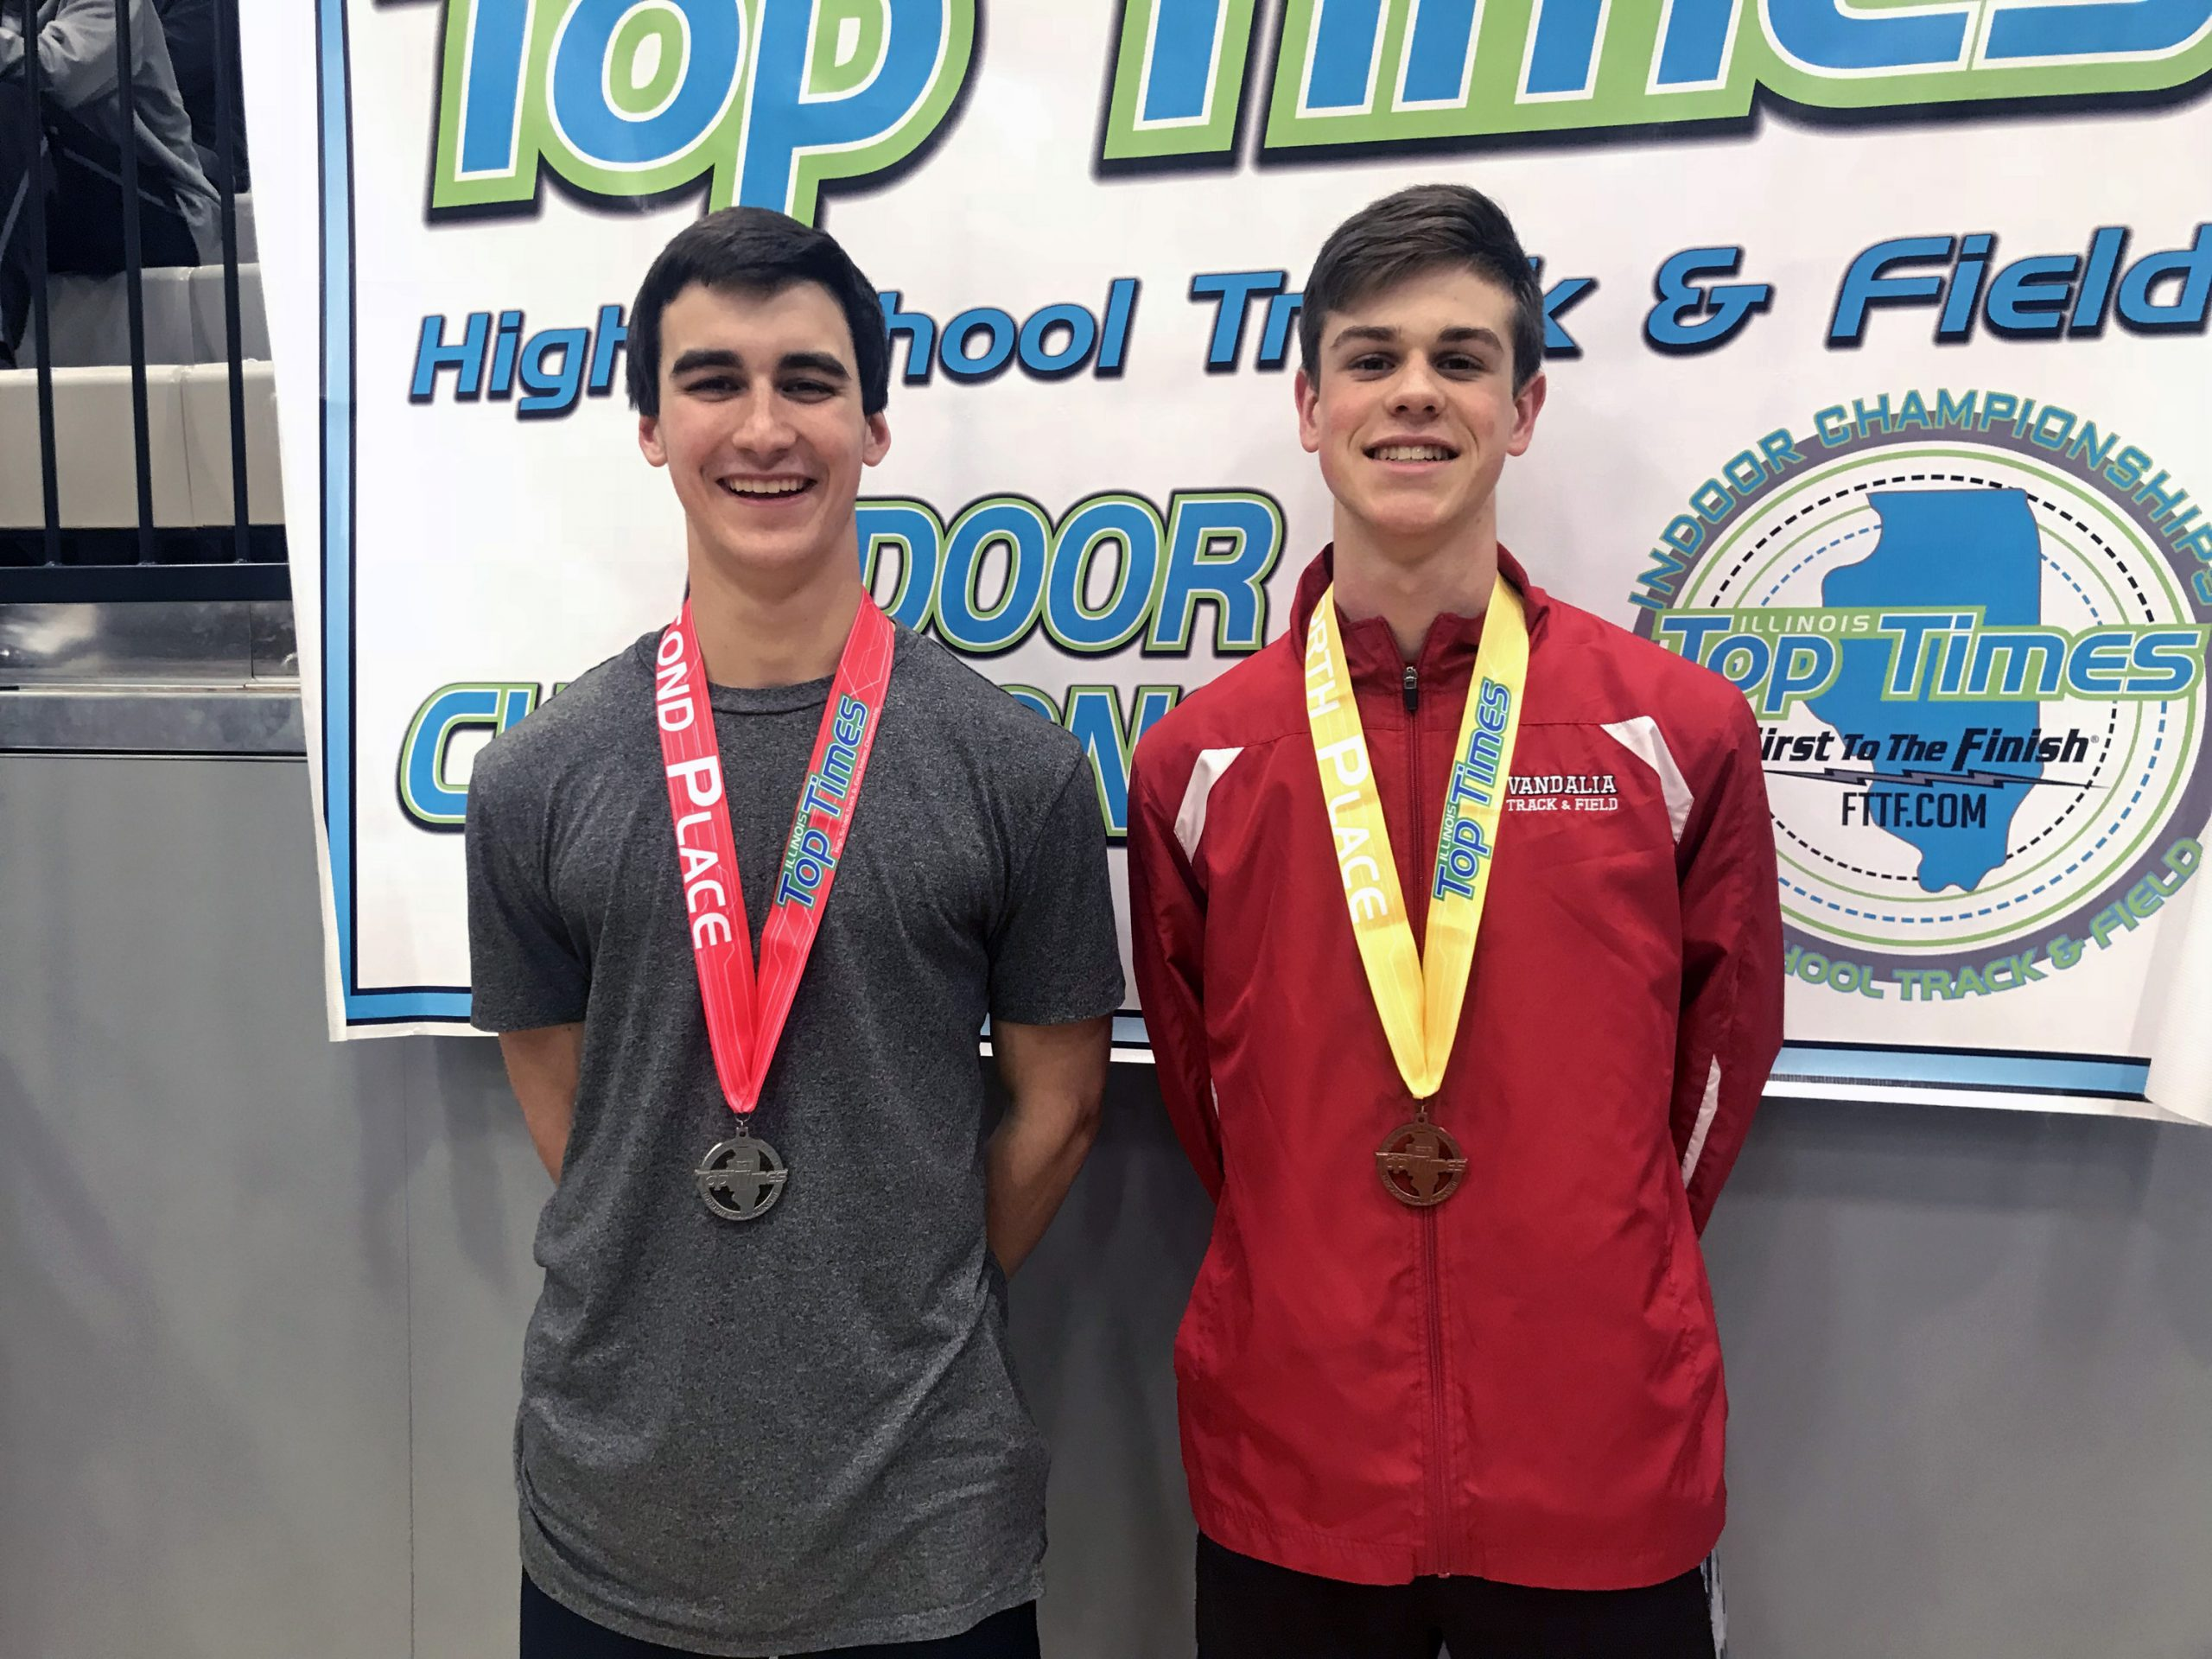 Vandals Track with 2 Medalists at Illinois Top Times Meet